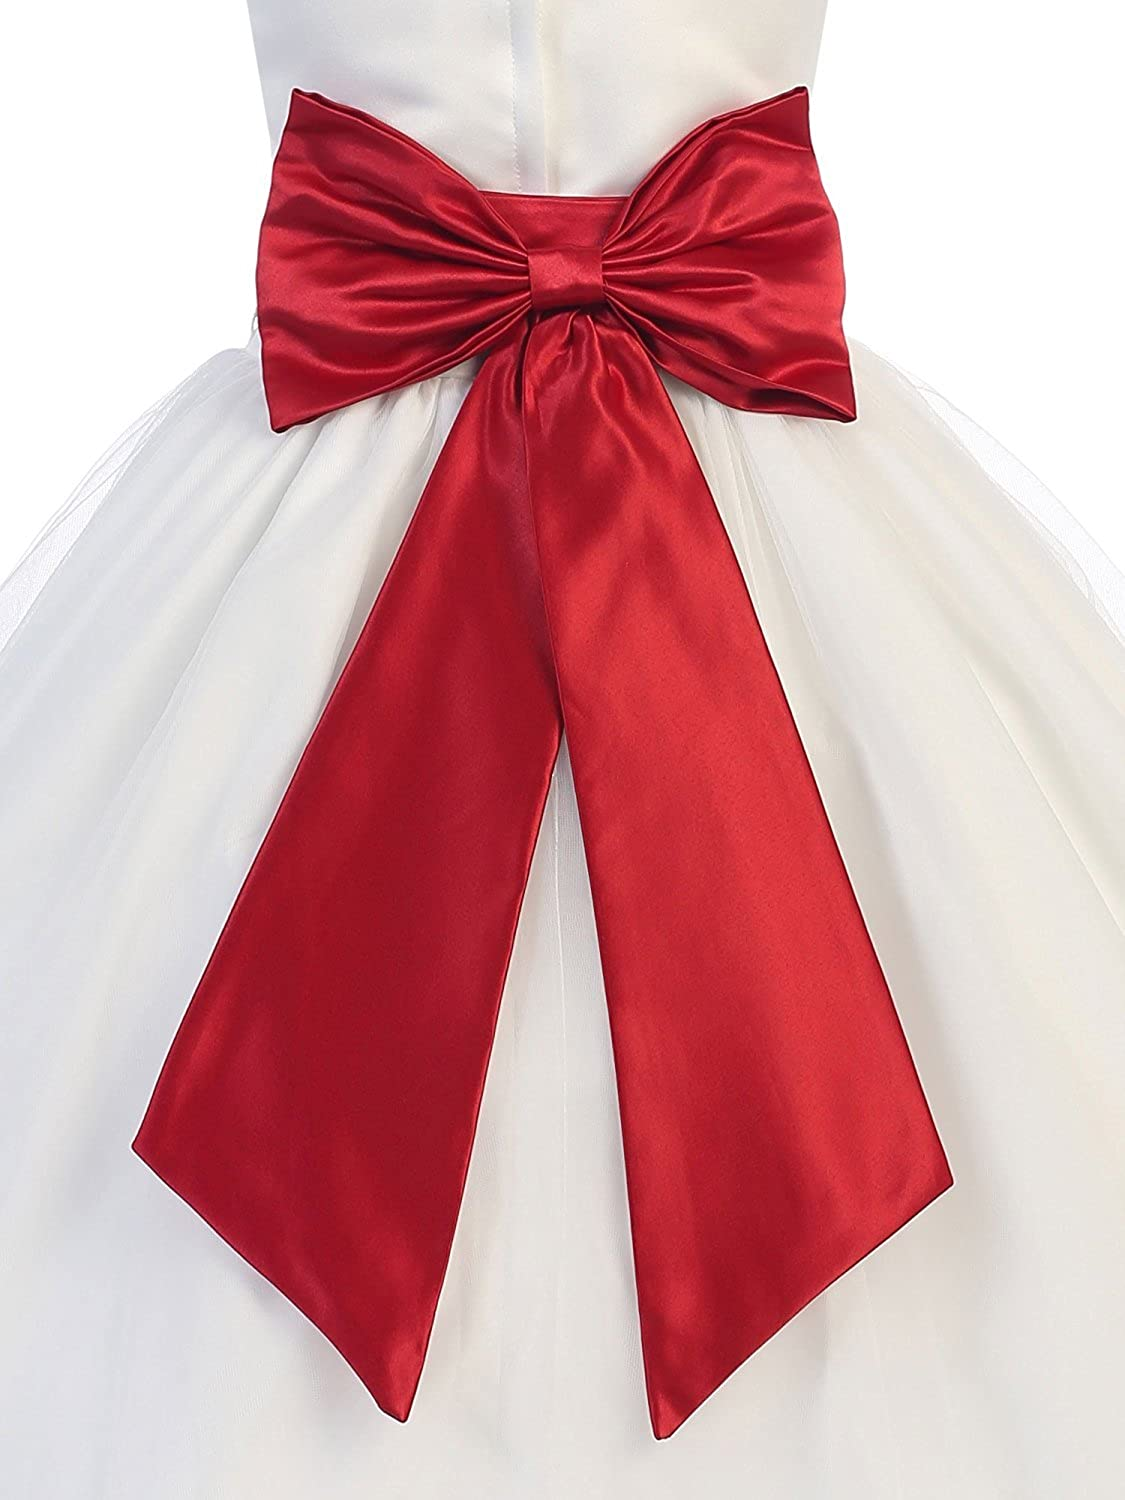 HotDresses Flower Girl Sash Belt with Big Bow Stain Tiebow Bow Tie Sash